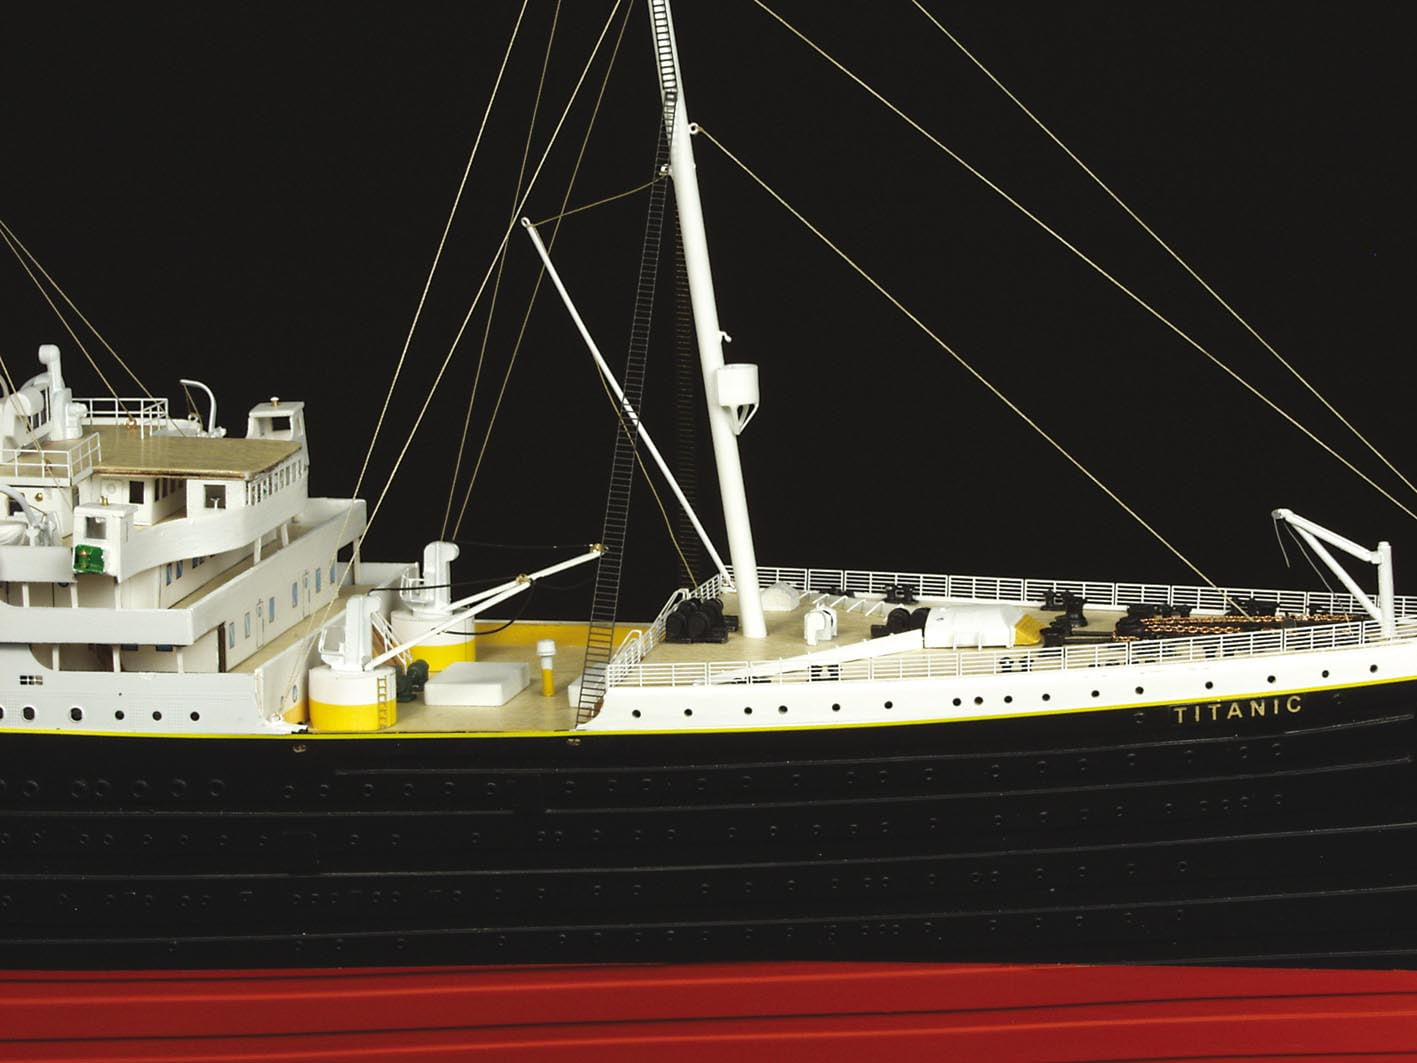 Amati Rms Titanic 1912 Wooden Model Ship Kit 1606 Hobbies